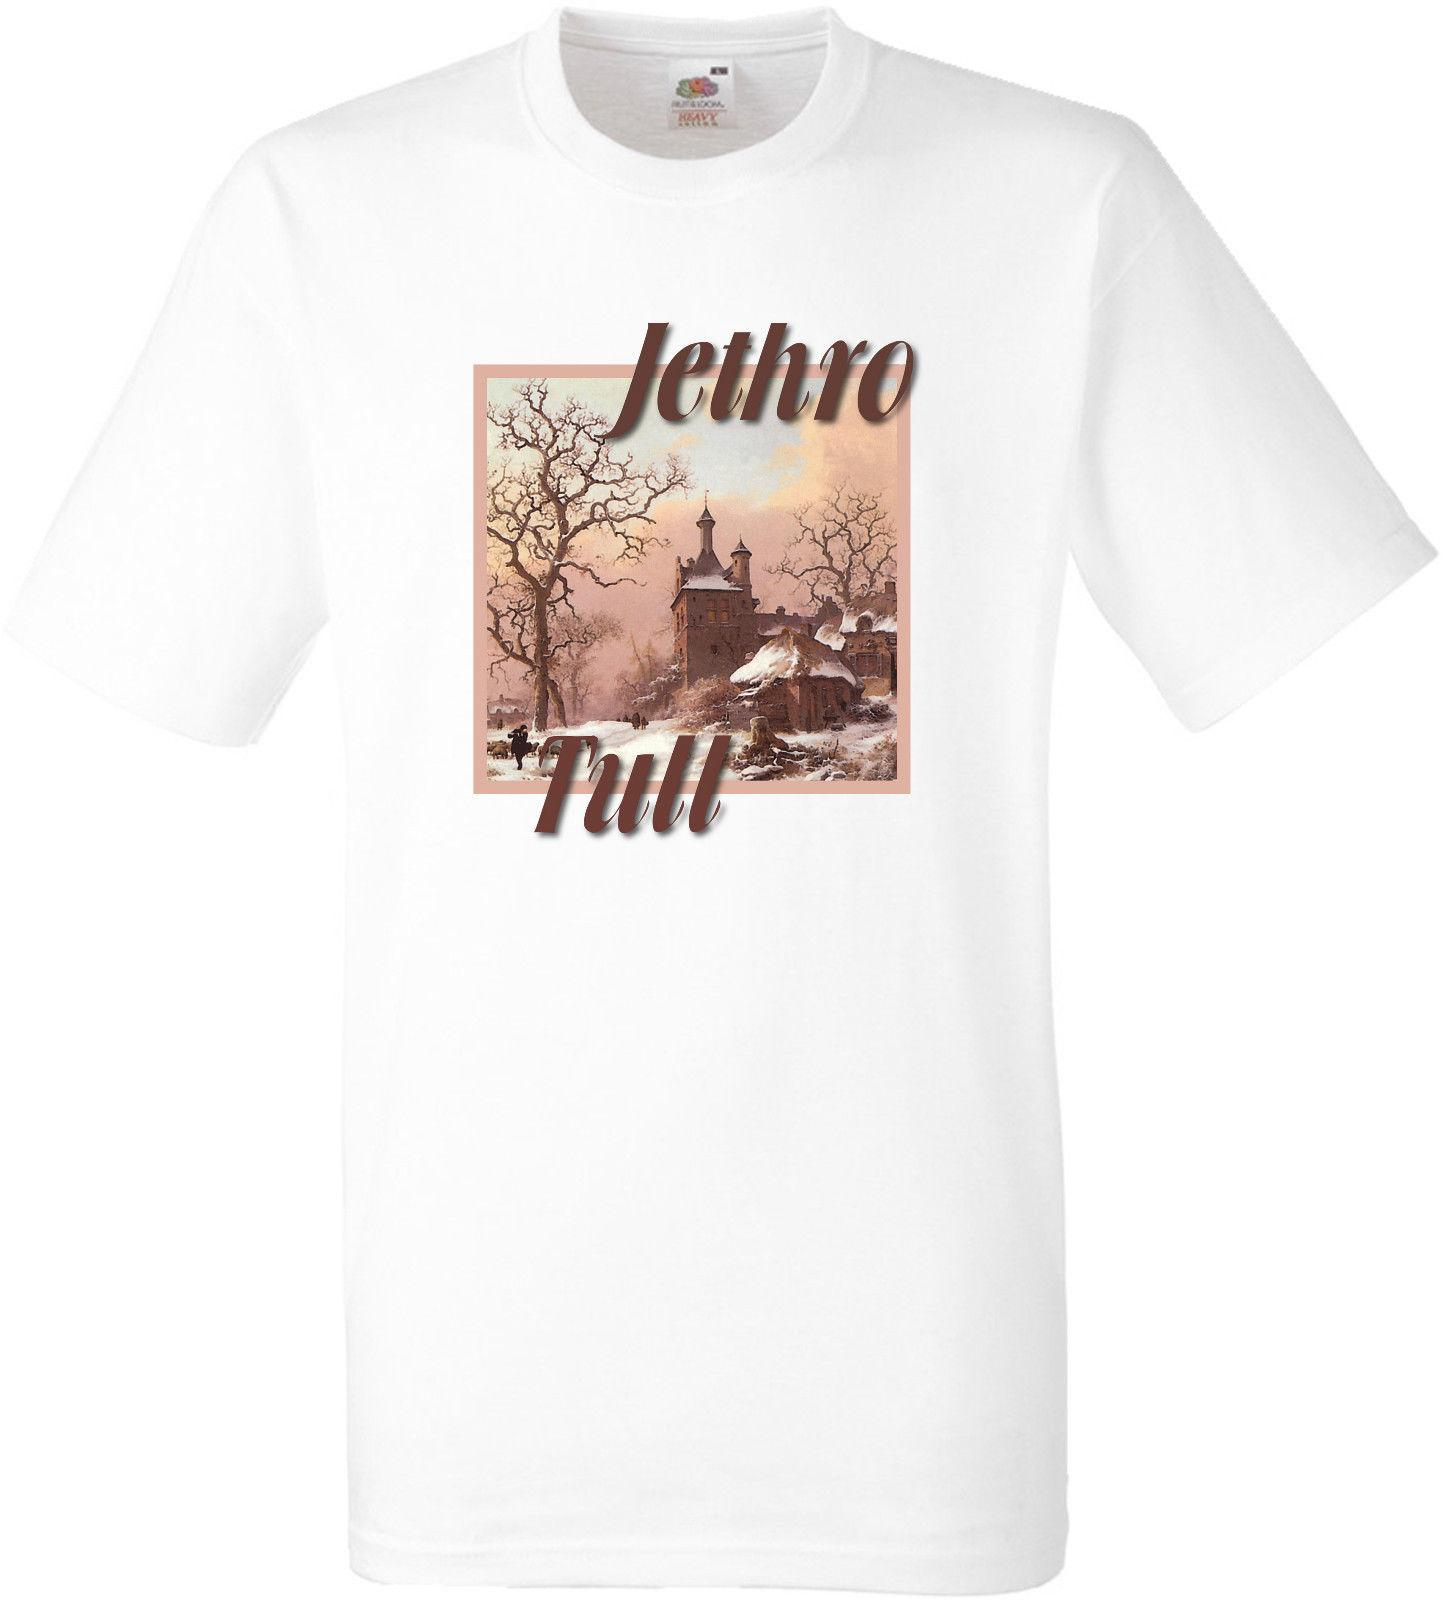 JETHRO TULL CHRISTMAS T SHIRT Fun T Shirts Online Shirts From ...